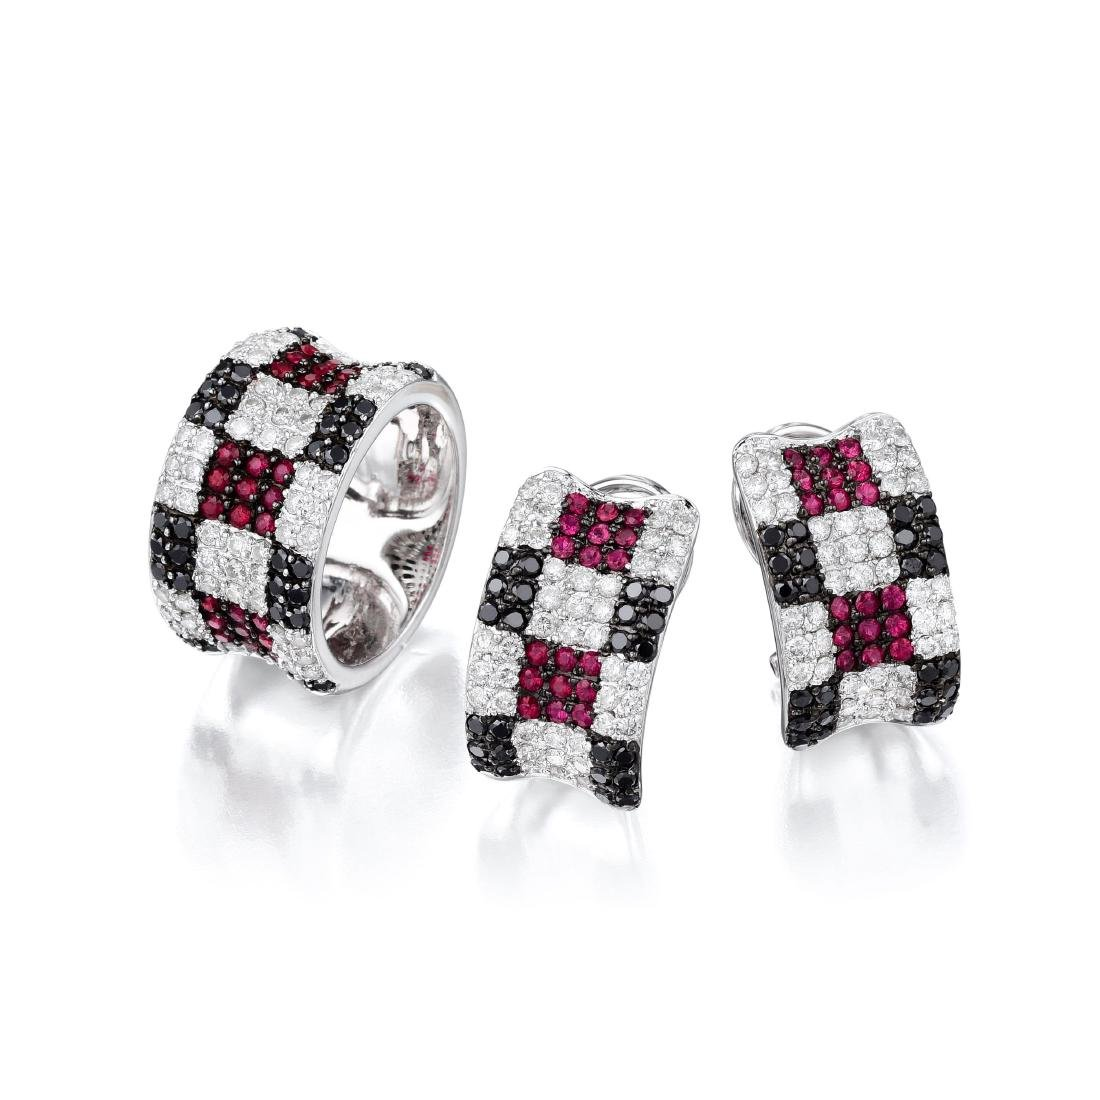 An 18K White Gold Diamond Ruby and Sapphire Set